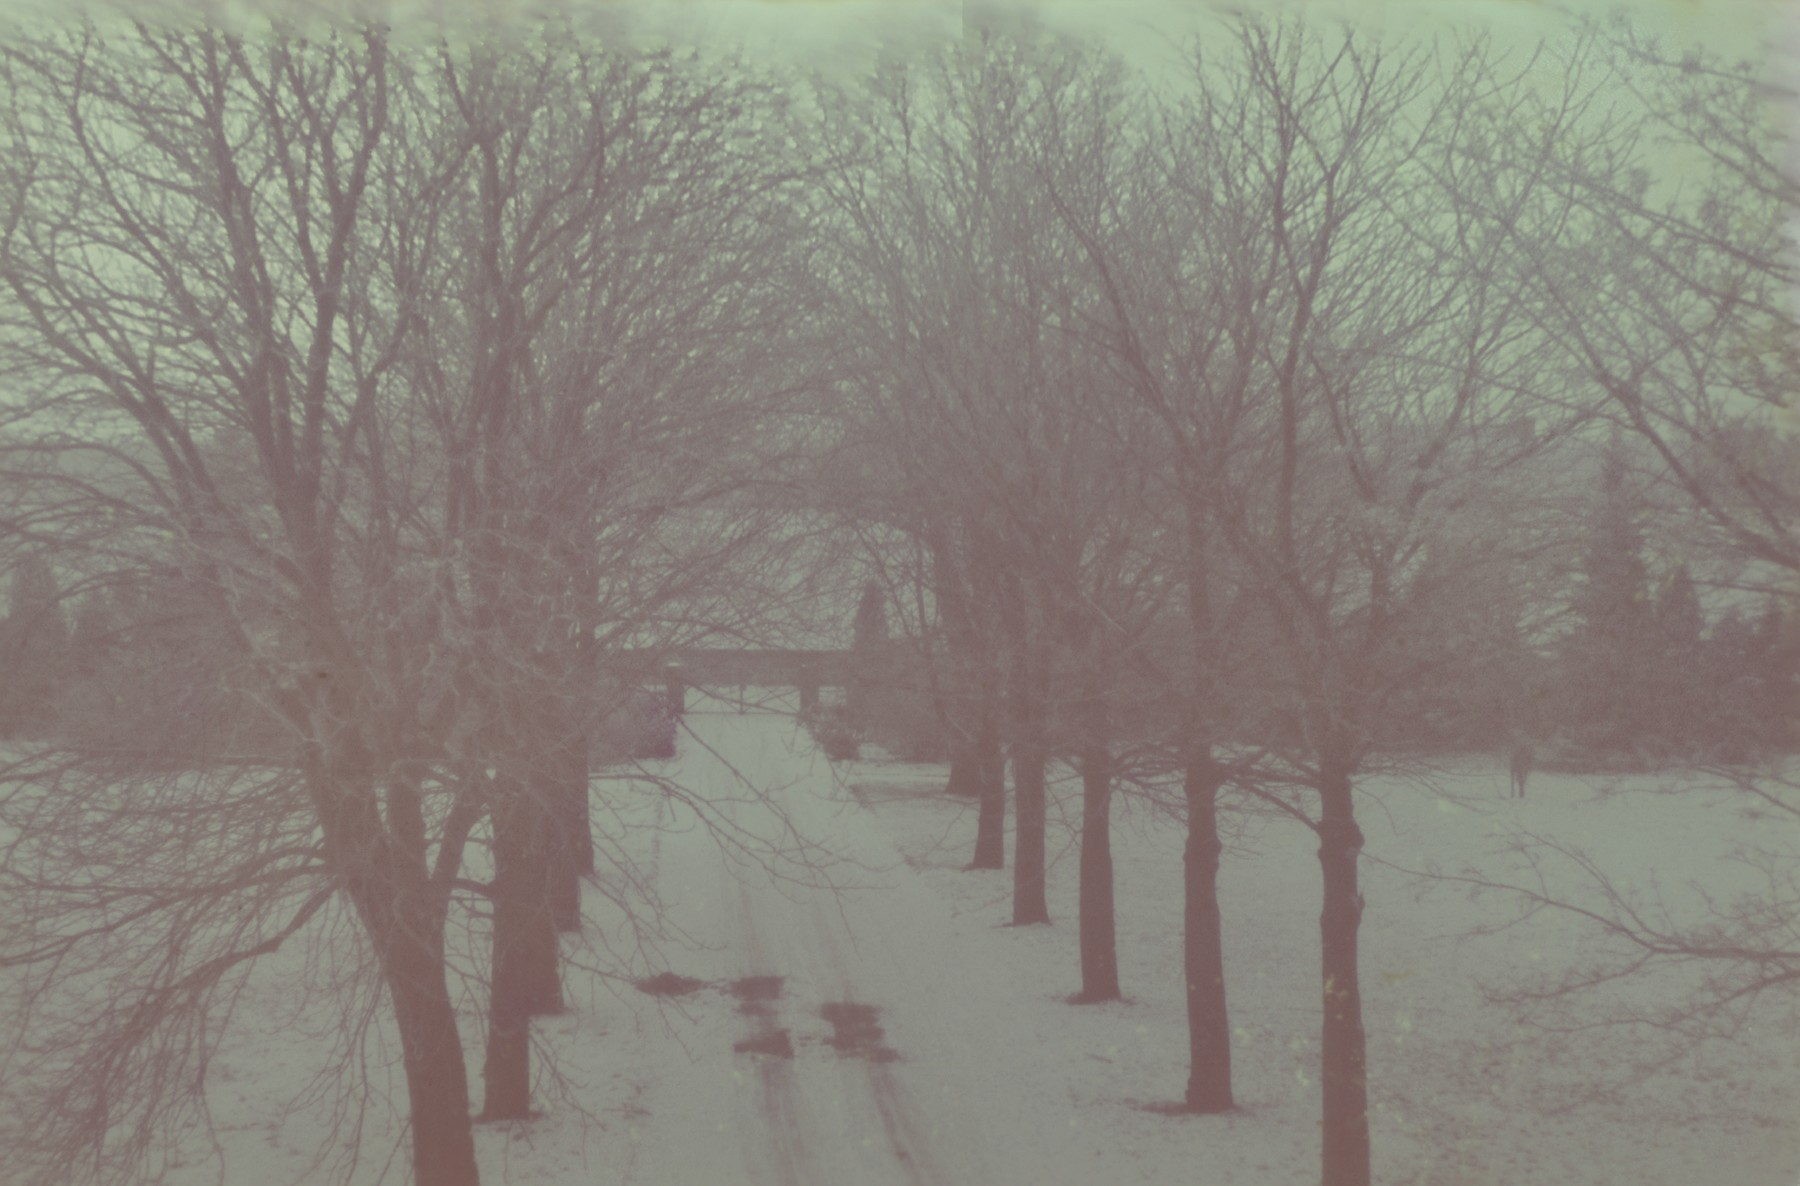 Unidentified winter landscape from the Genewein collection.